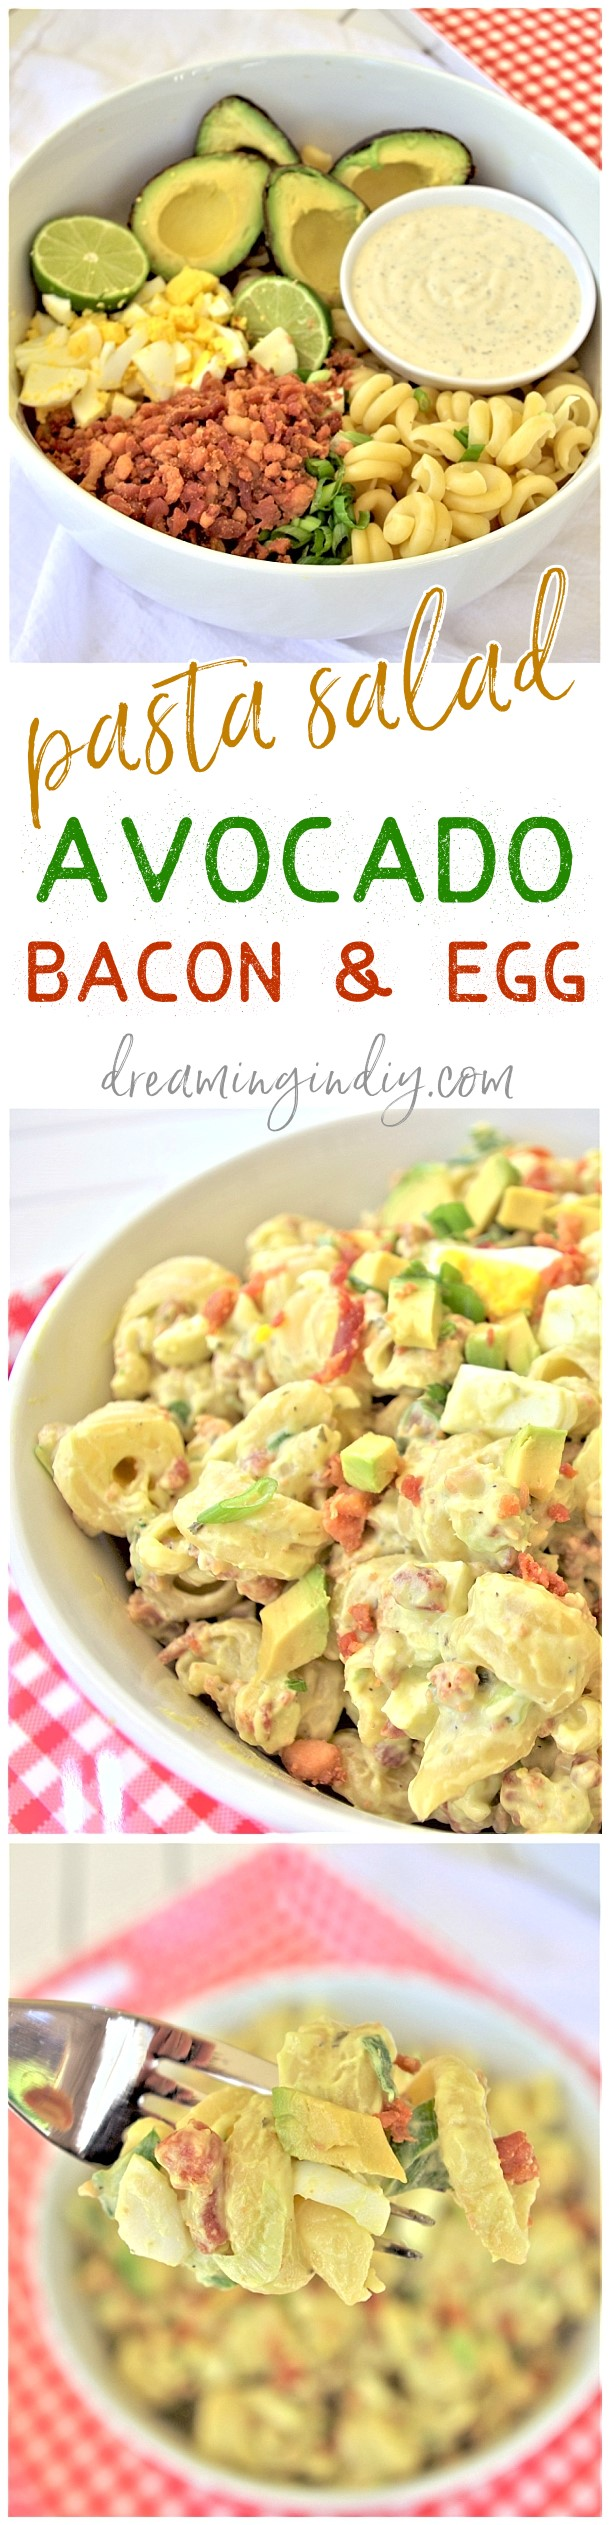 Avocado Egg And Bacon Pasta Salad Side Dish Easy Quick Recipe